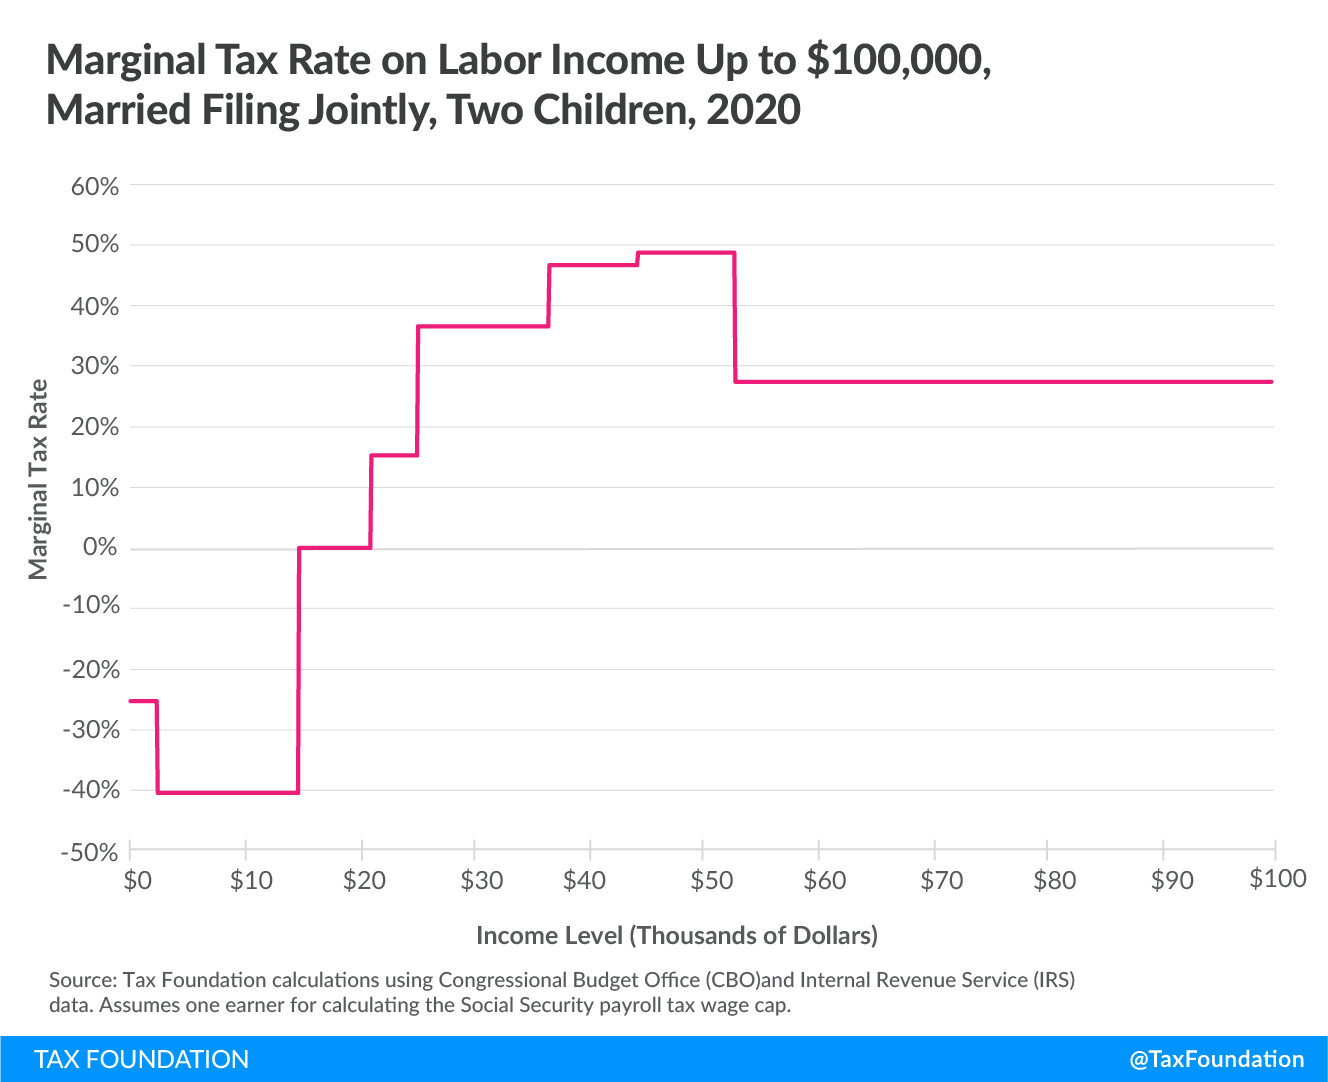 Marginal tax rate on labor income up to $100,000 married filing jointly, two children, 2020, Marginal Tax Rates on Labor Income in the U.S. After the Tax Cuts and Jobs Act